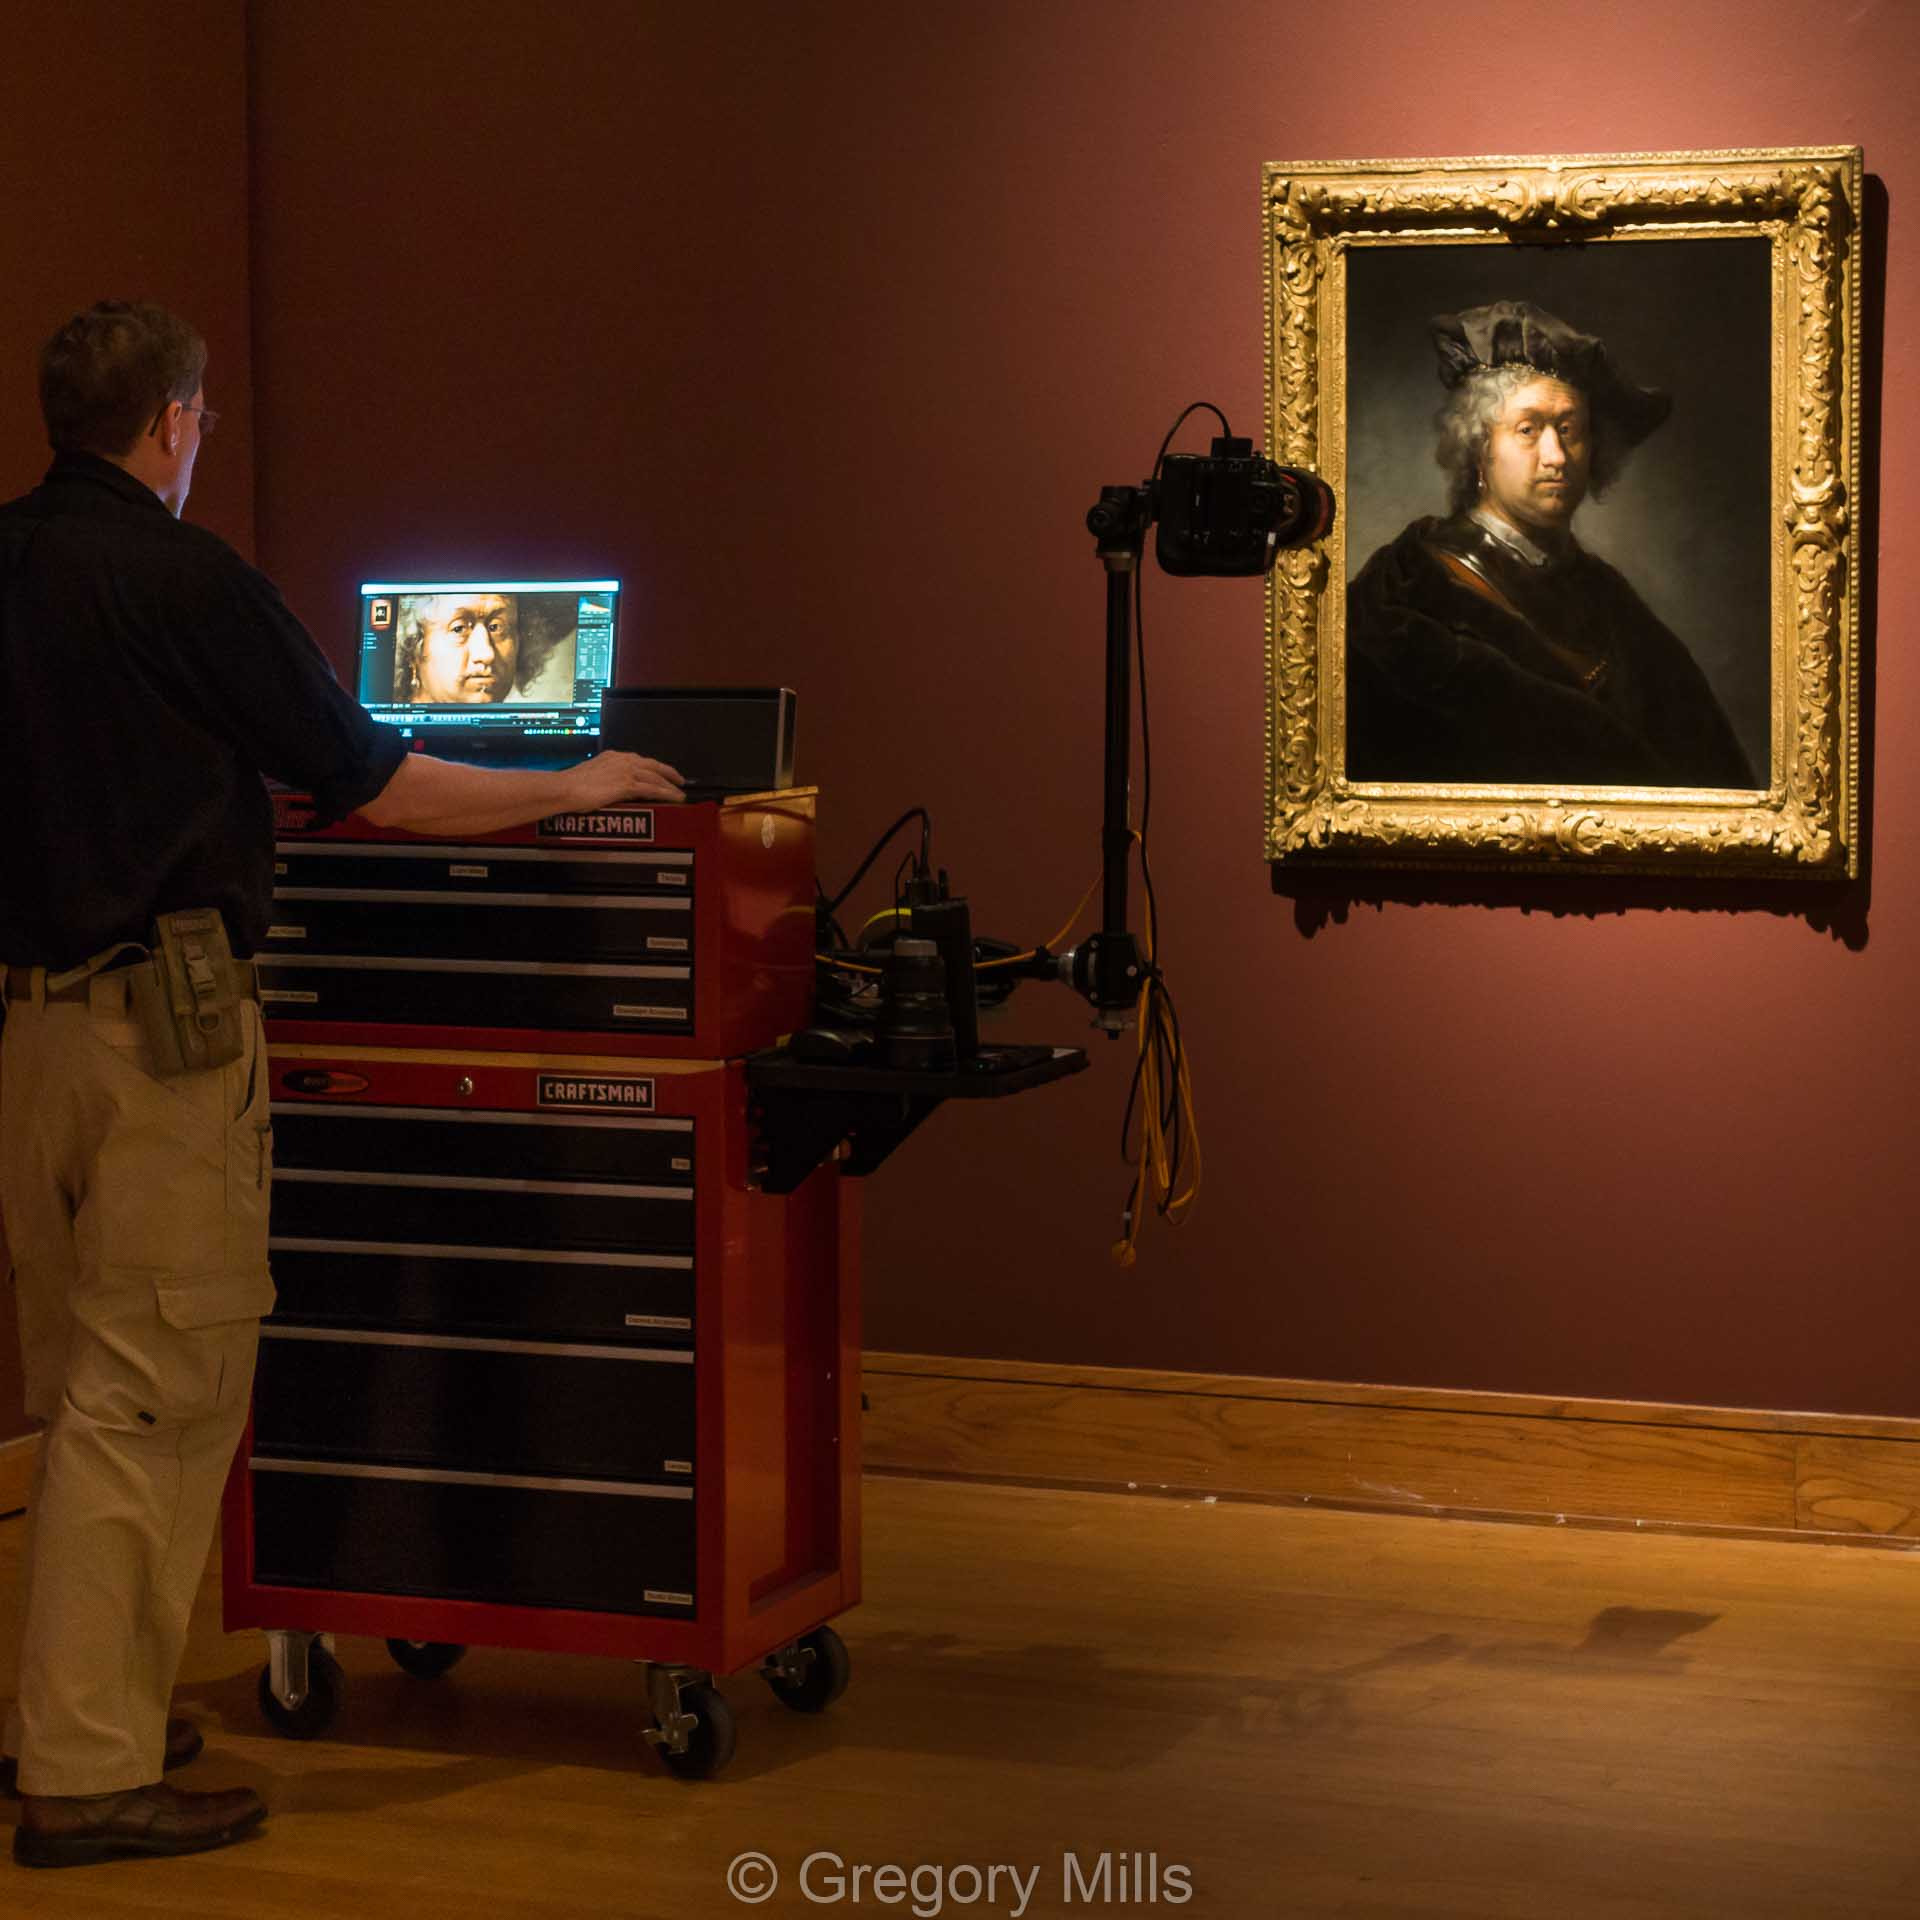 Here I am photographing a portrait of Rembrandt by one of his students using a tethered Nikon D800E which uploads directly into my laptop as I take each photo to make sure it is sharp and in focus.